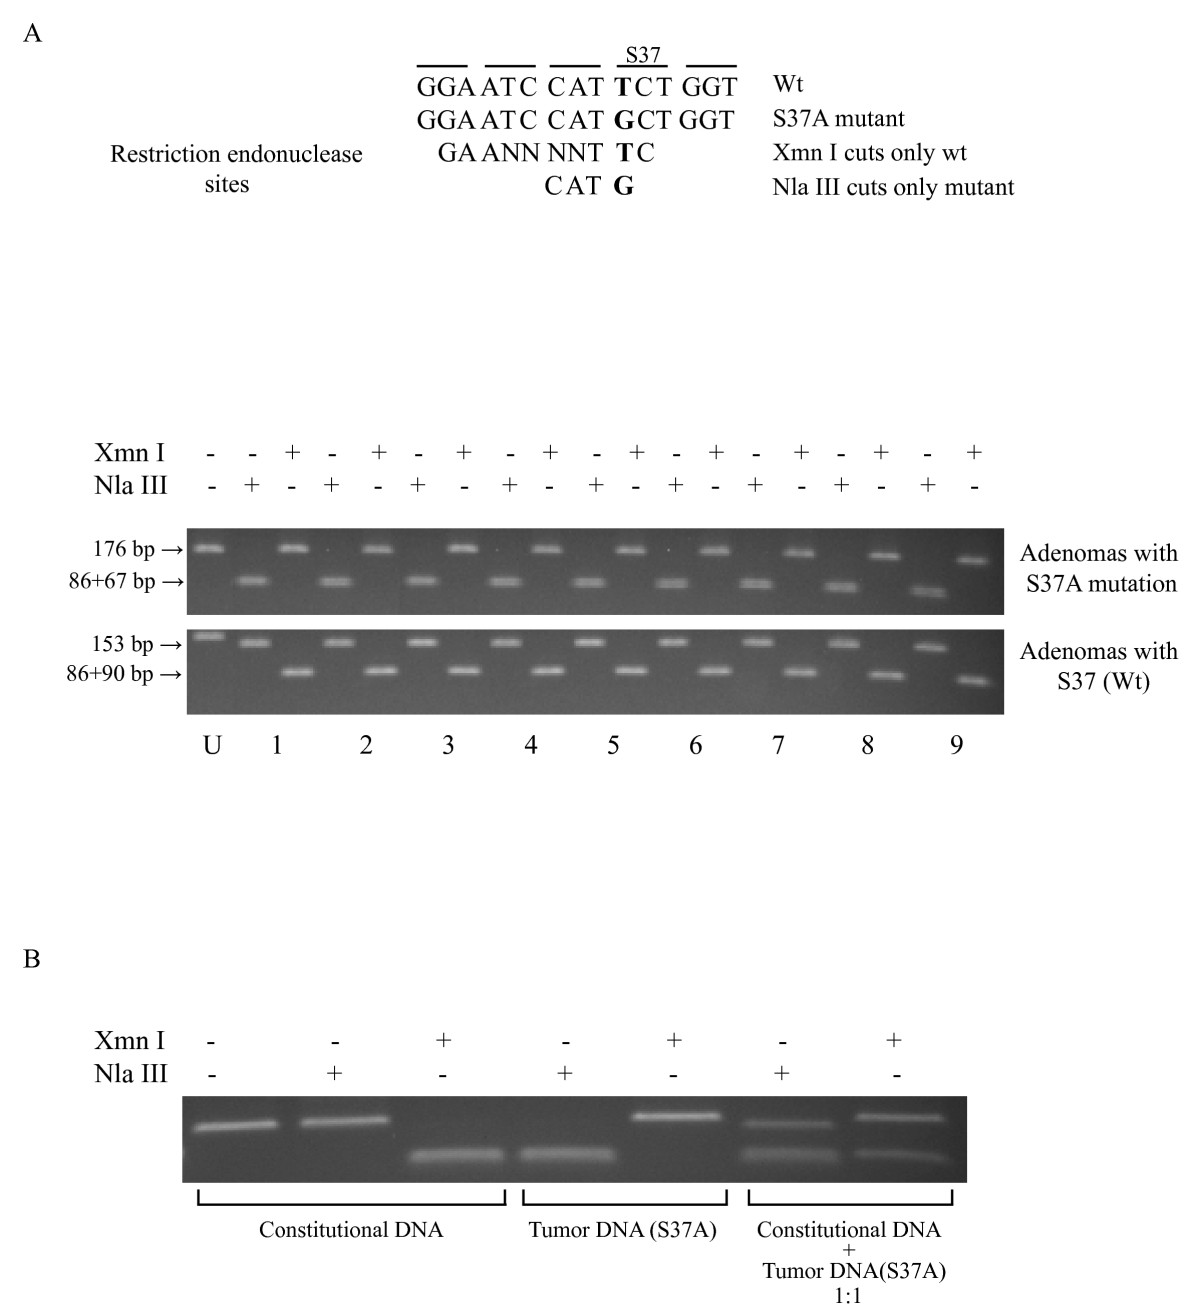 http://static-content.springer.com/image/art%3A10.1186%2F1476-4598-7-53/MediaObjects/12943_2008_Article_344_Fig2_HTML.jpg